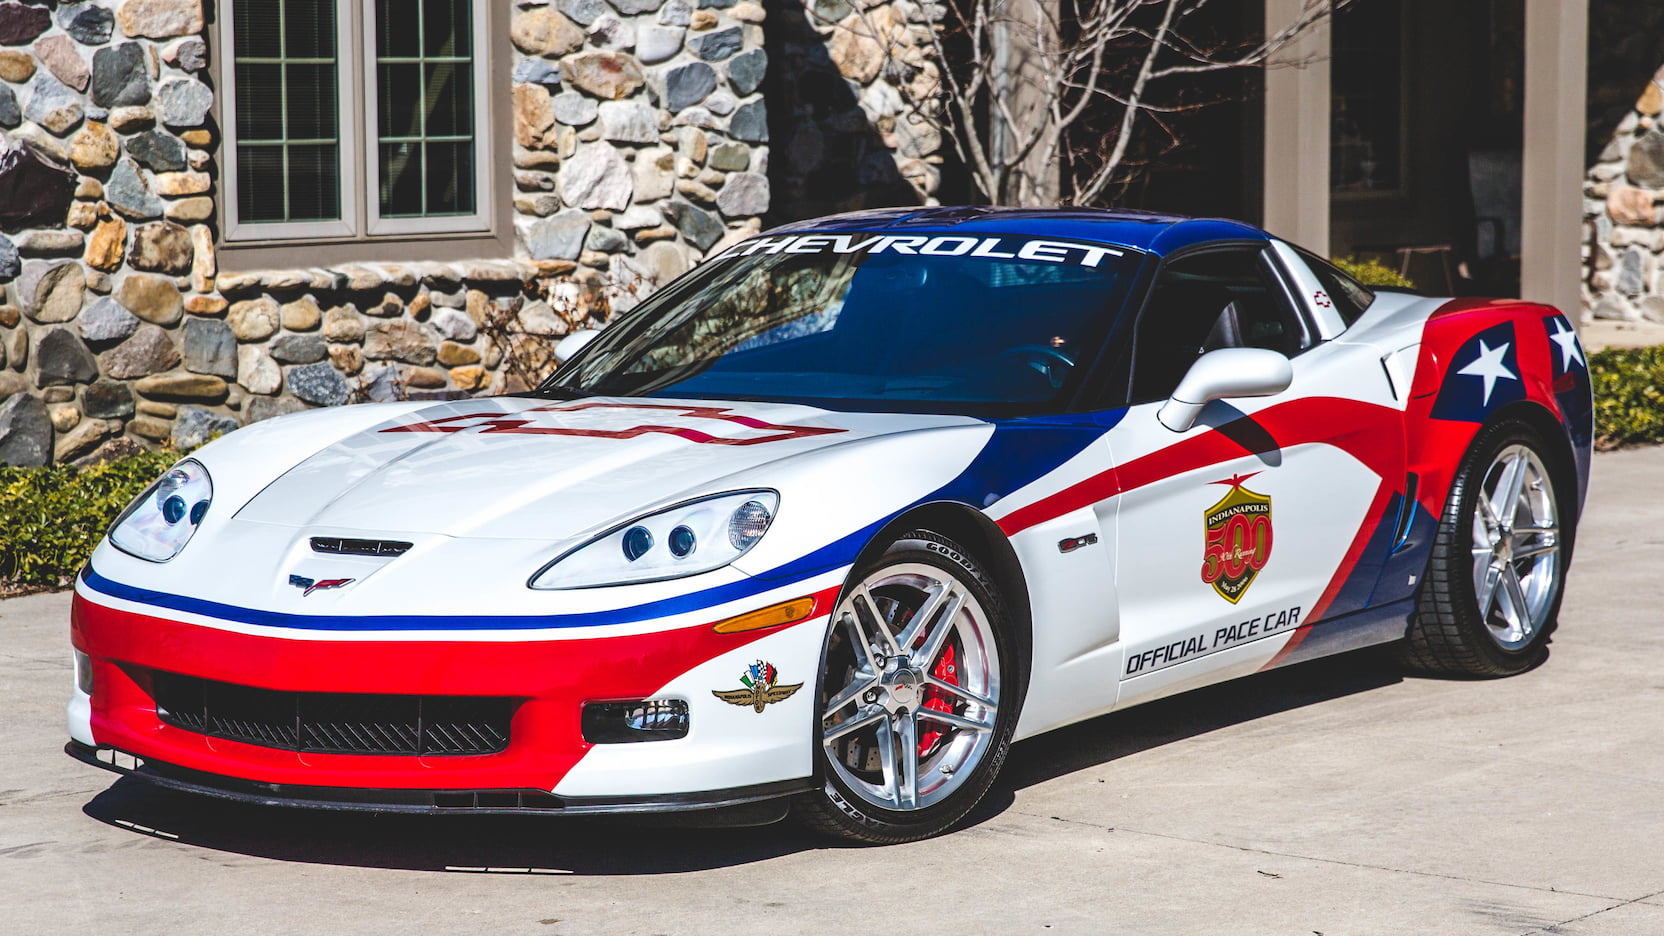 2006 Chevrolet Corvette Z06 Pace Car Edition Front 3/4